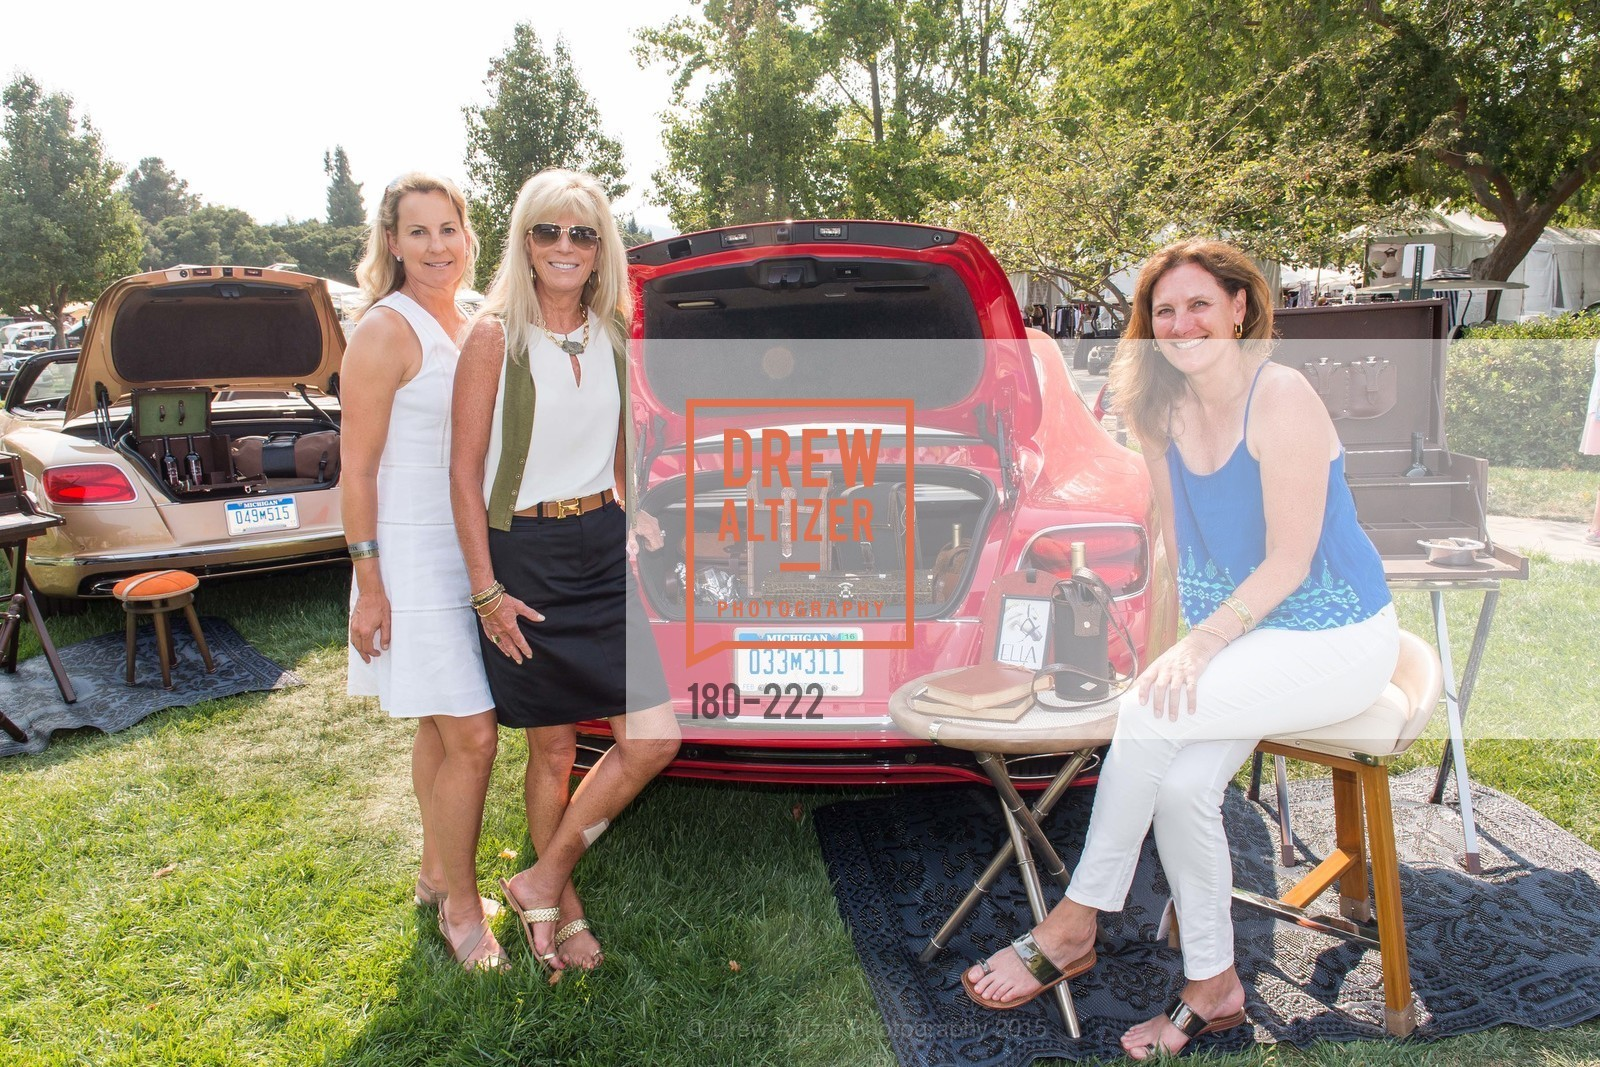 Catherine Harvey, Susan Martin, Suzanne Rischman, Bentley Tailgate Party Benefiting the Menlo Charity Horse Show, Menlo Circus Club, August 8th, 2015,Drew Altizer, Drew Altizer Photography, full-service event agency, private events, San Francisco photographer, photographer California